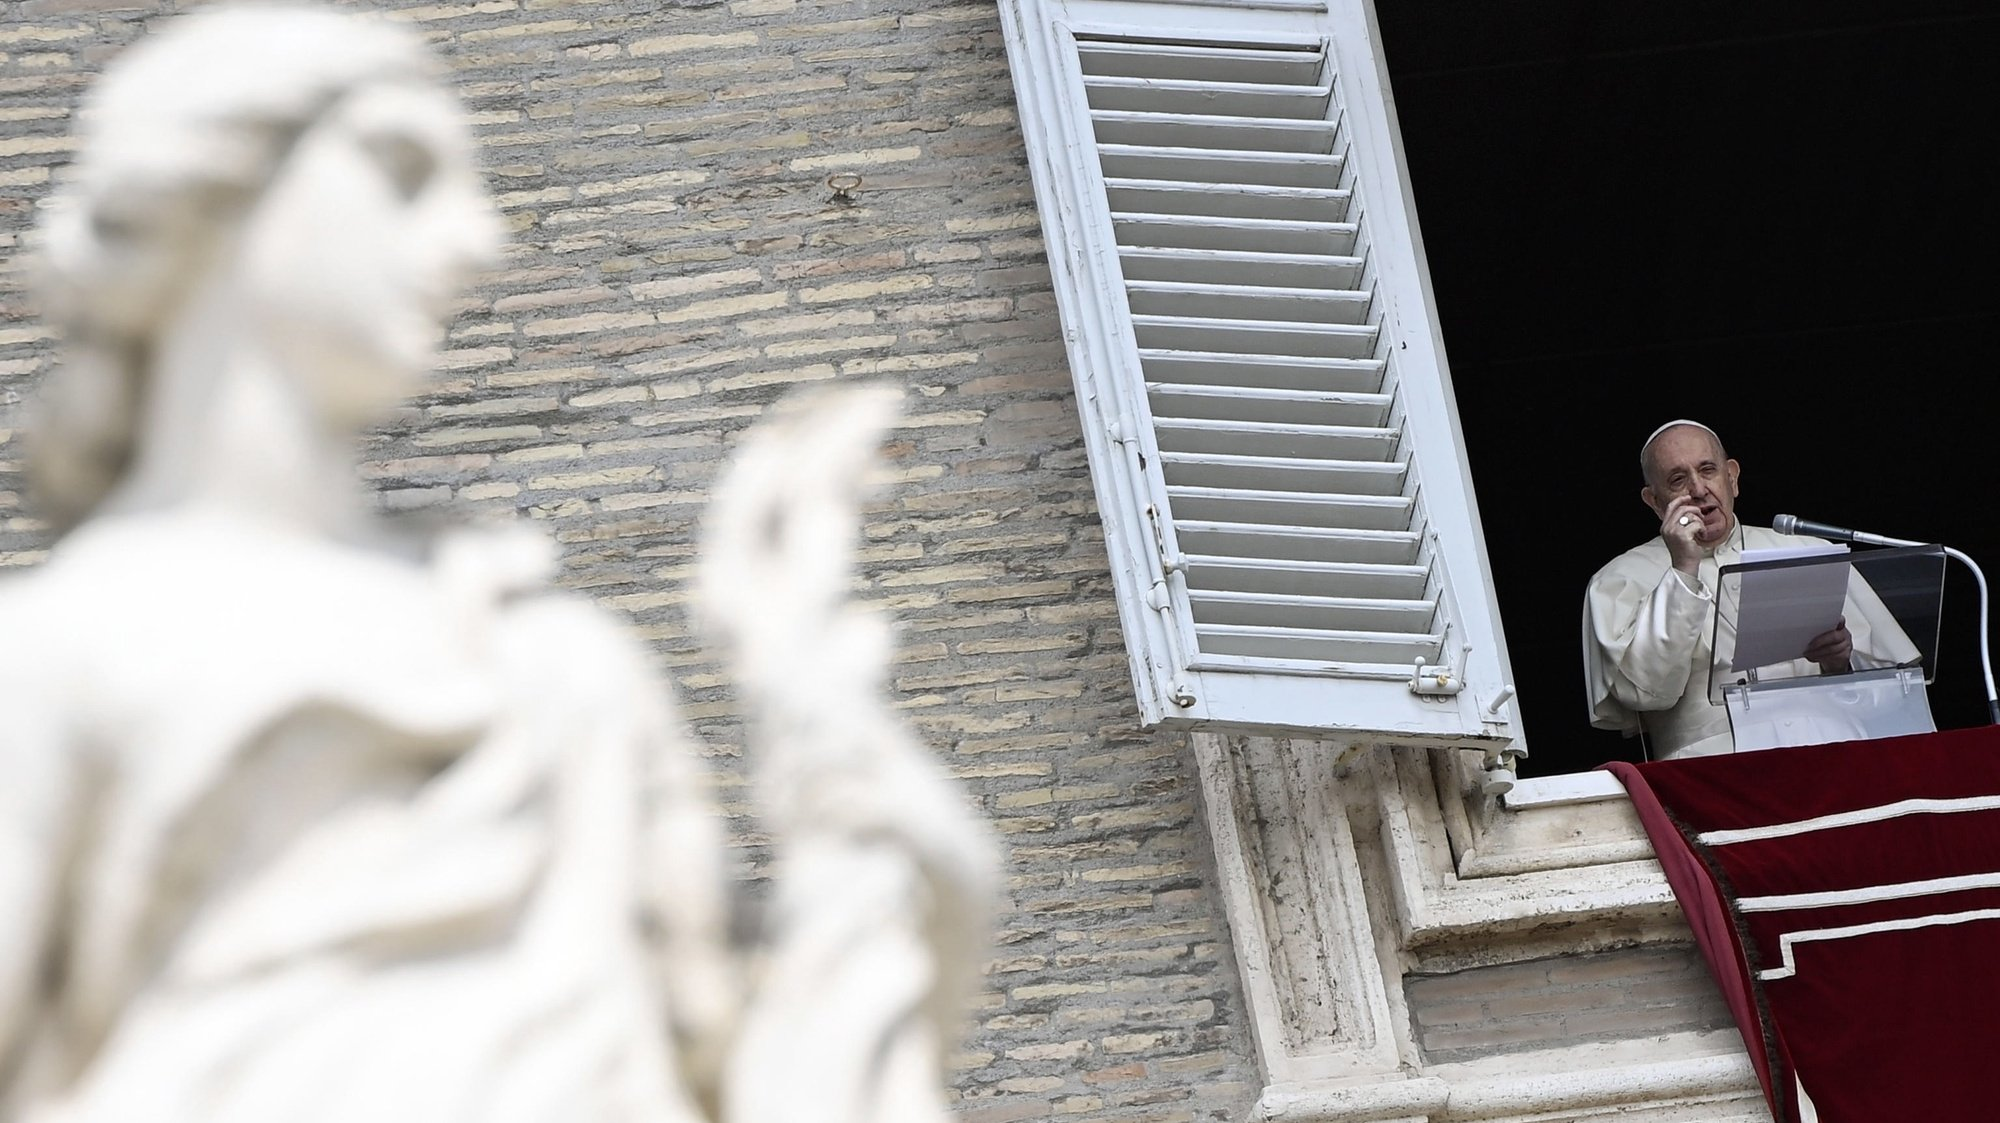 epa09142917 Pope Francis leads his Sunday Regina Coeli prayer from the window of his office overlooking Saint Peter's Square, Vatican City, 18 April 2021.  EPA/RICCARDO ANTIMIANI